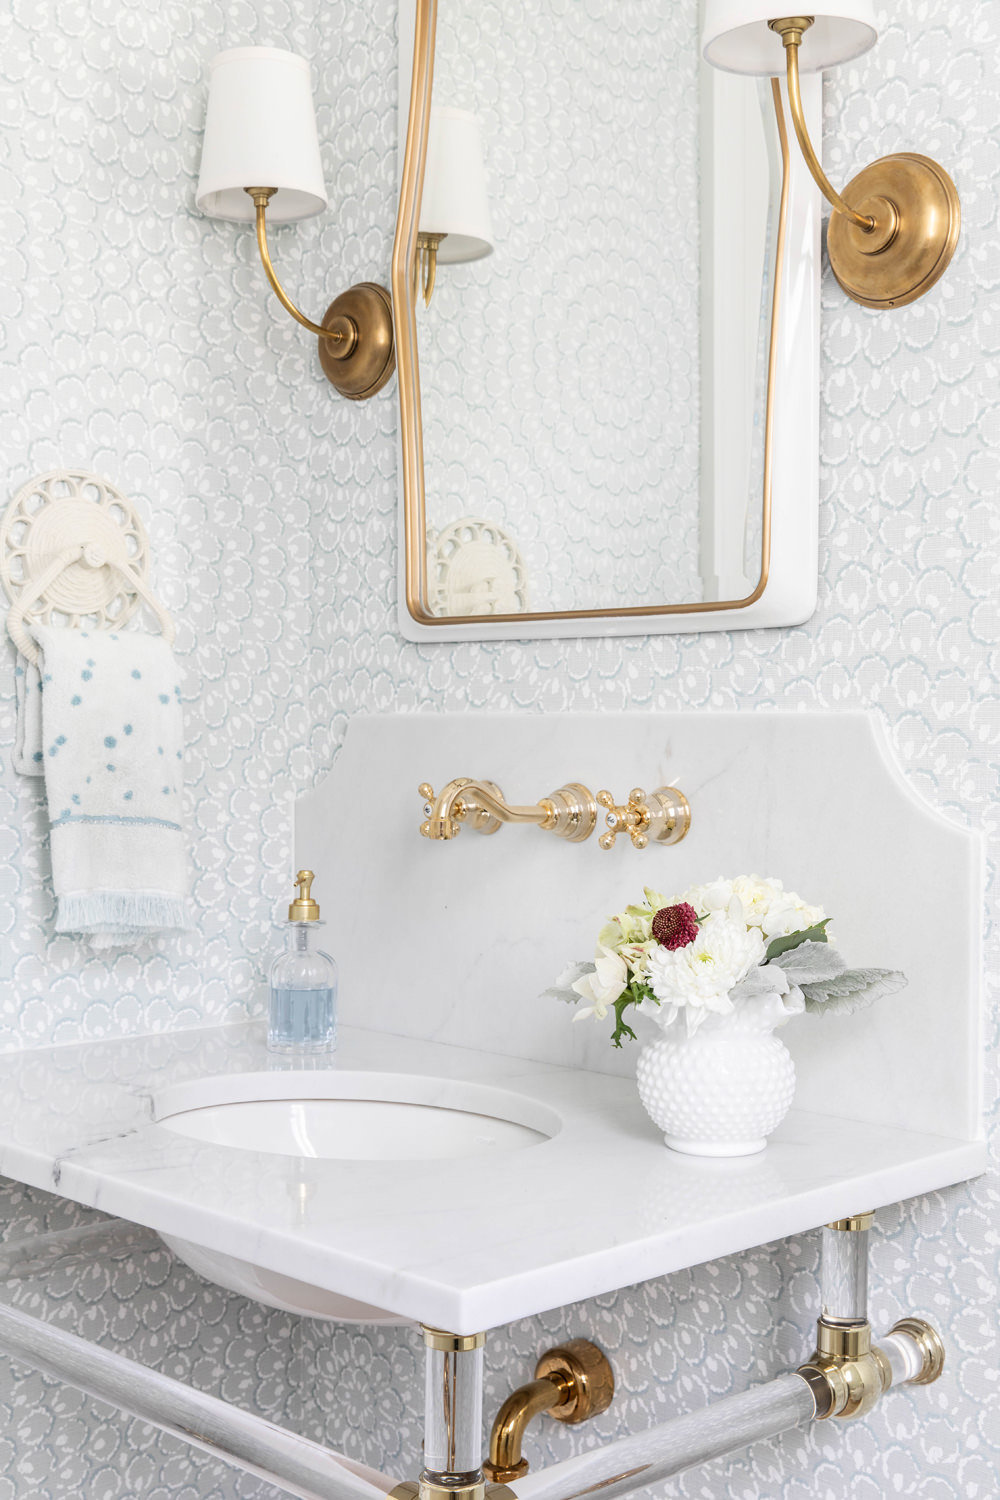 Thibaut-Wallpaper-with-Marble-Decorative-Backsplash-and-Acrylic-Brass-Sink-Legs-4